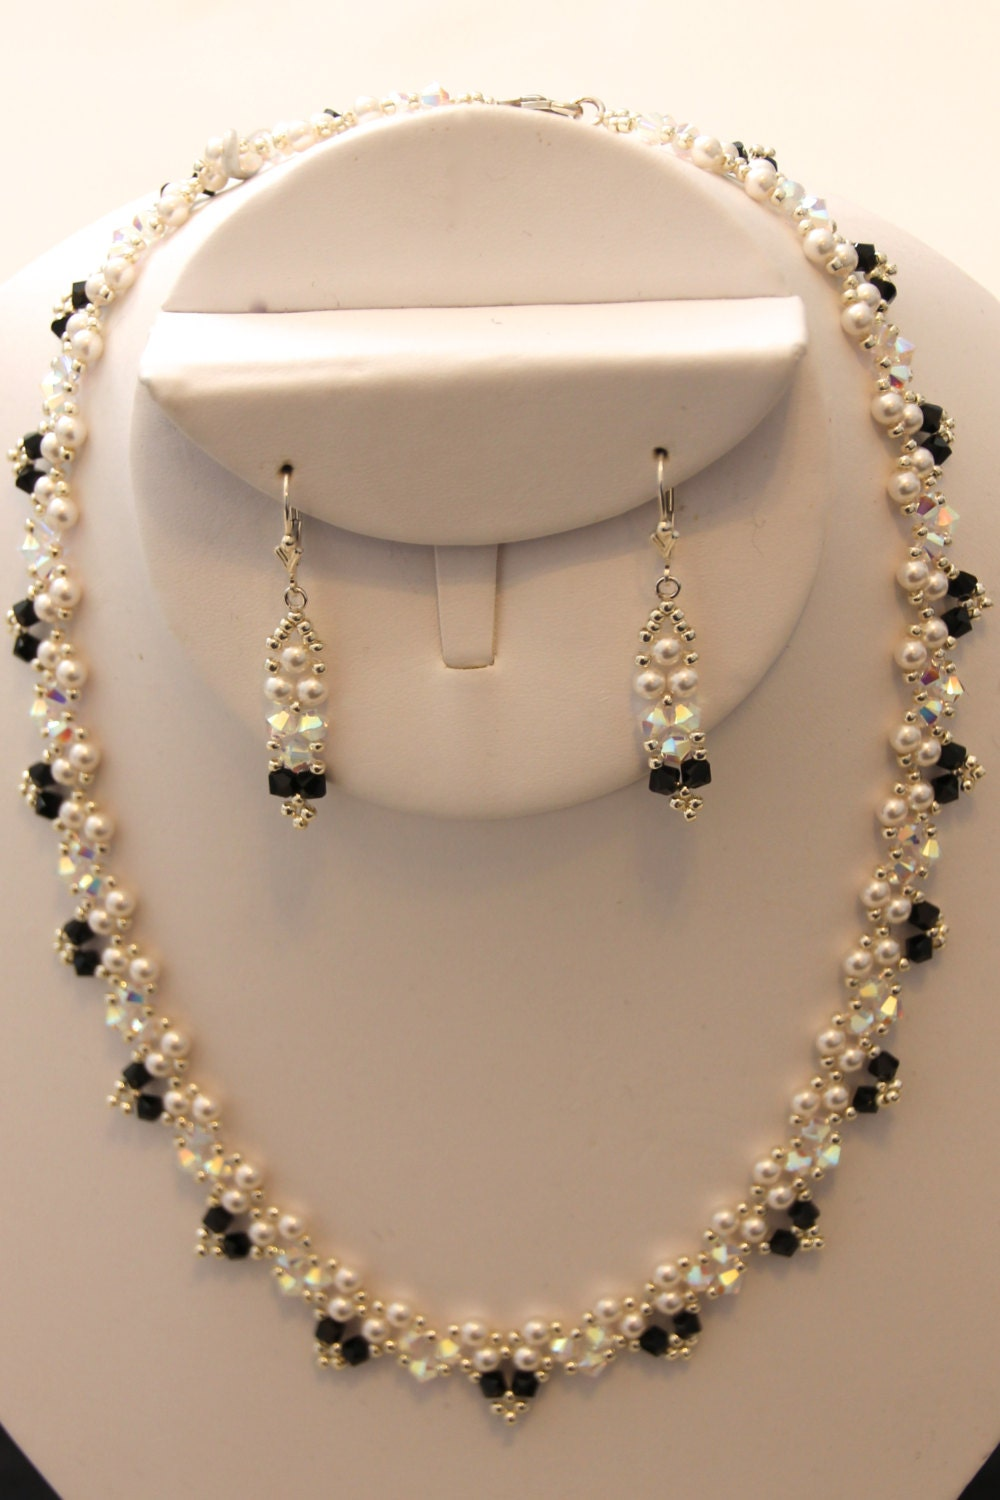 swarovski and seed bead necklace earring set